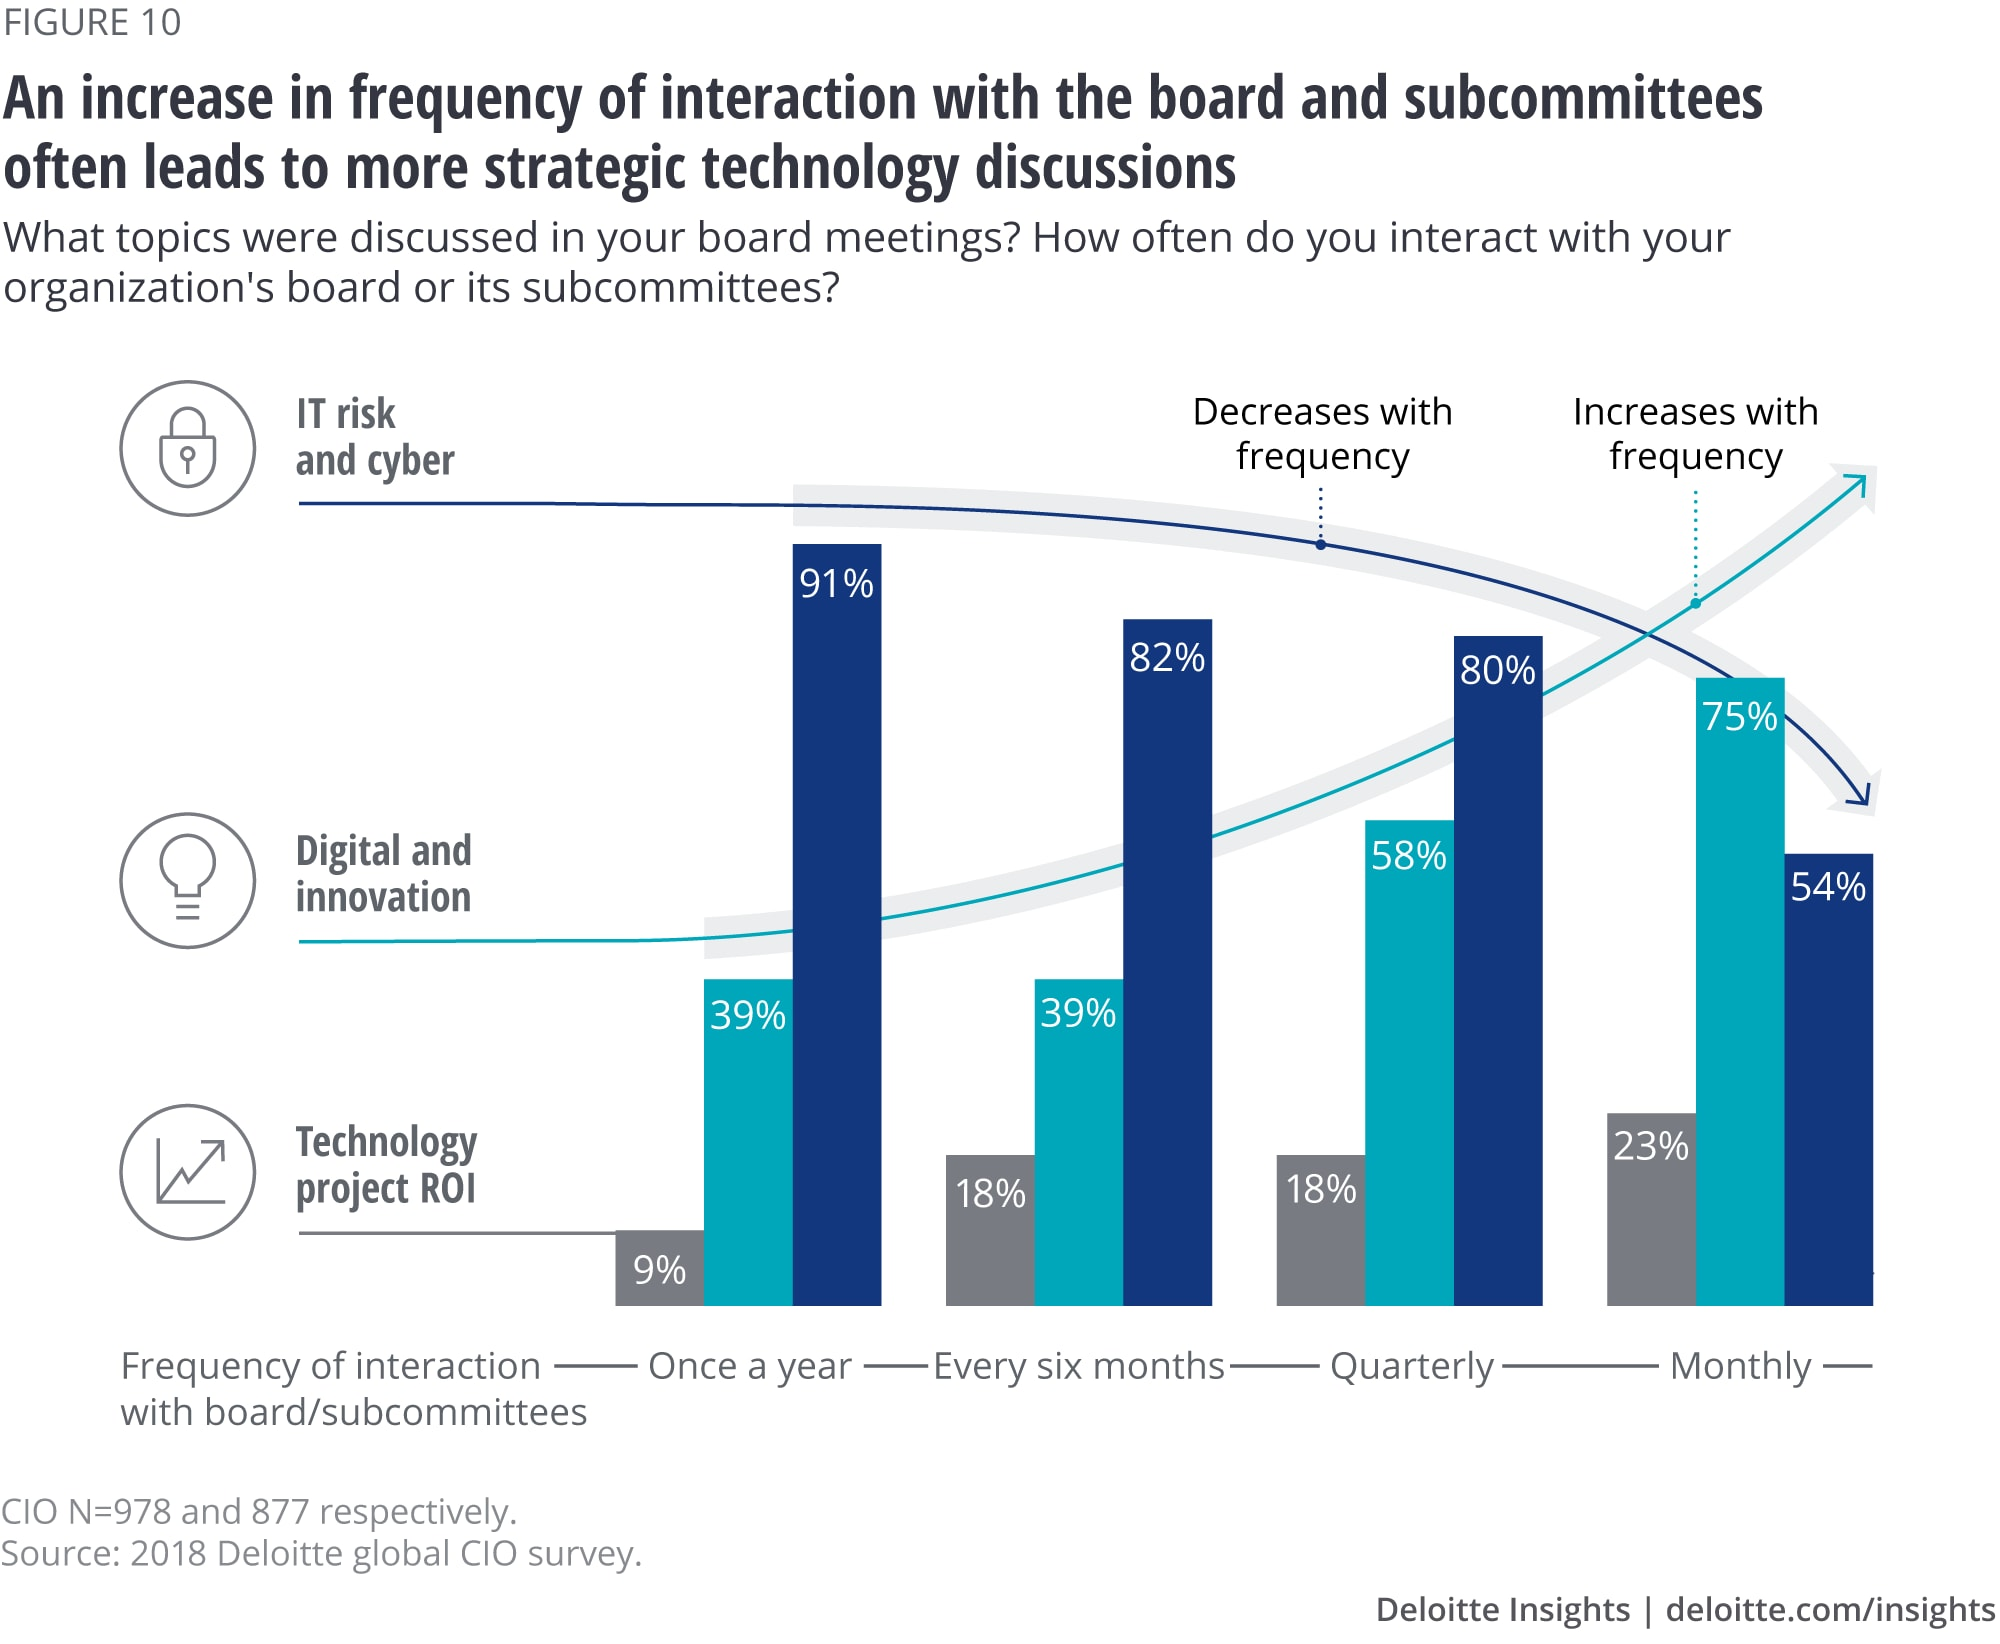 An increase in frequency of interaction with the board and subcommittees often leads to more strategic technology discussions